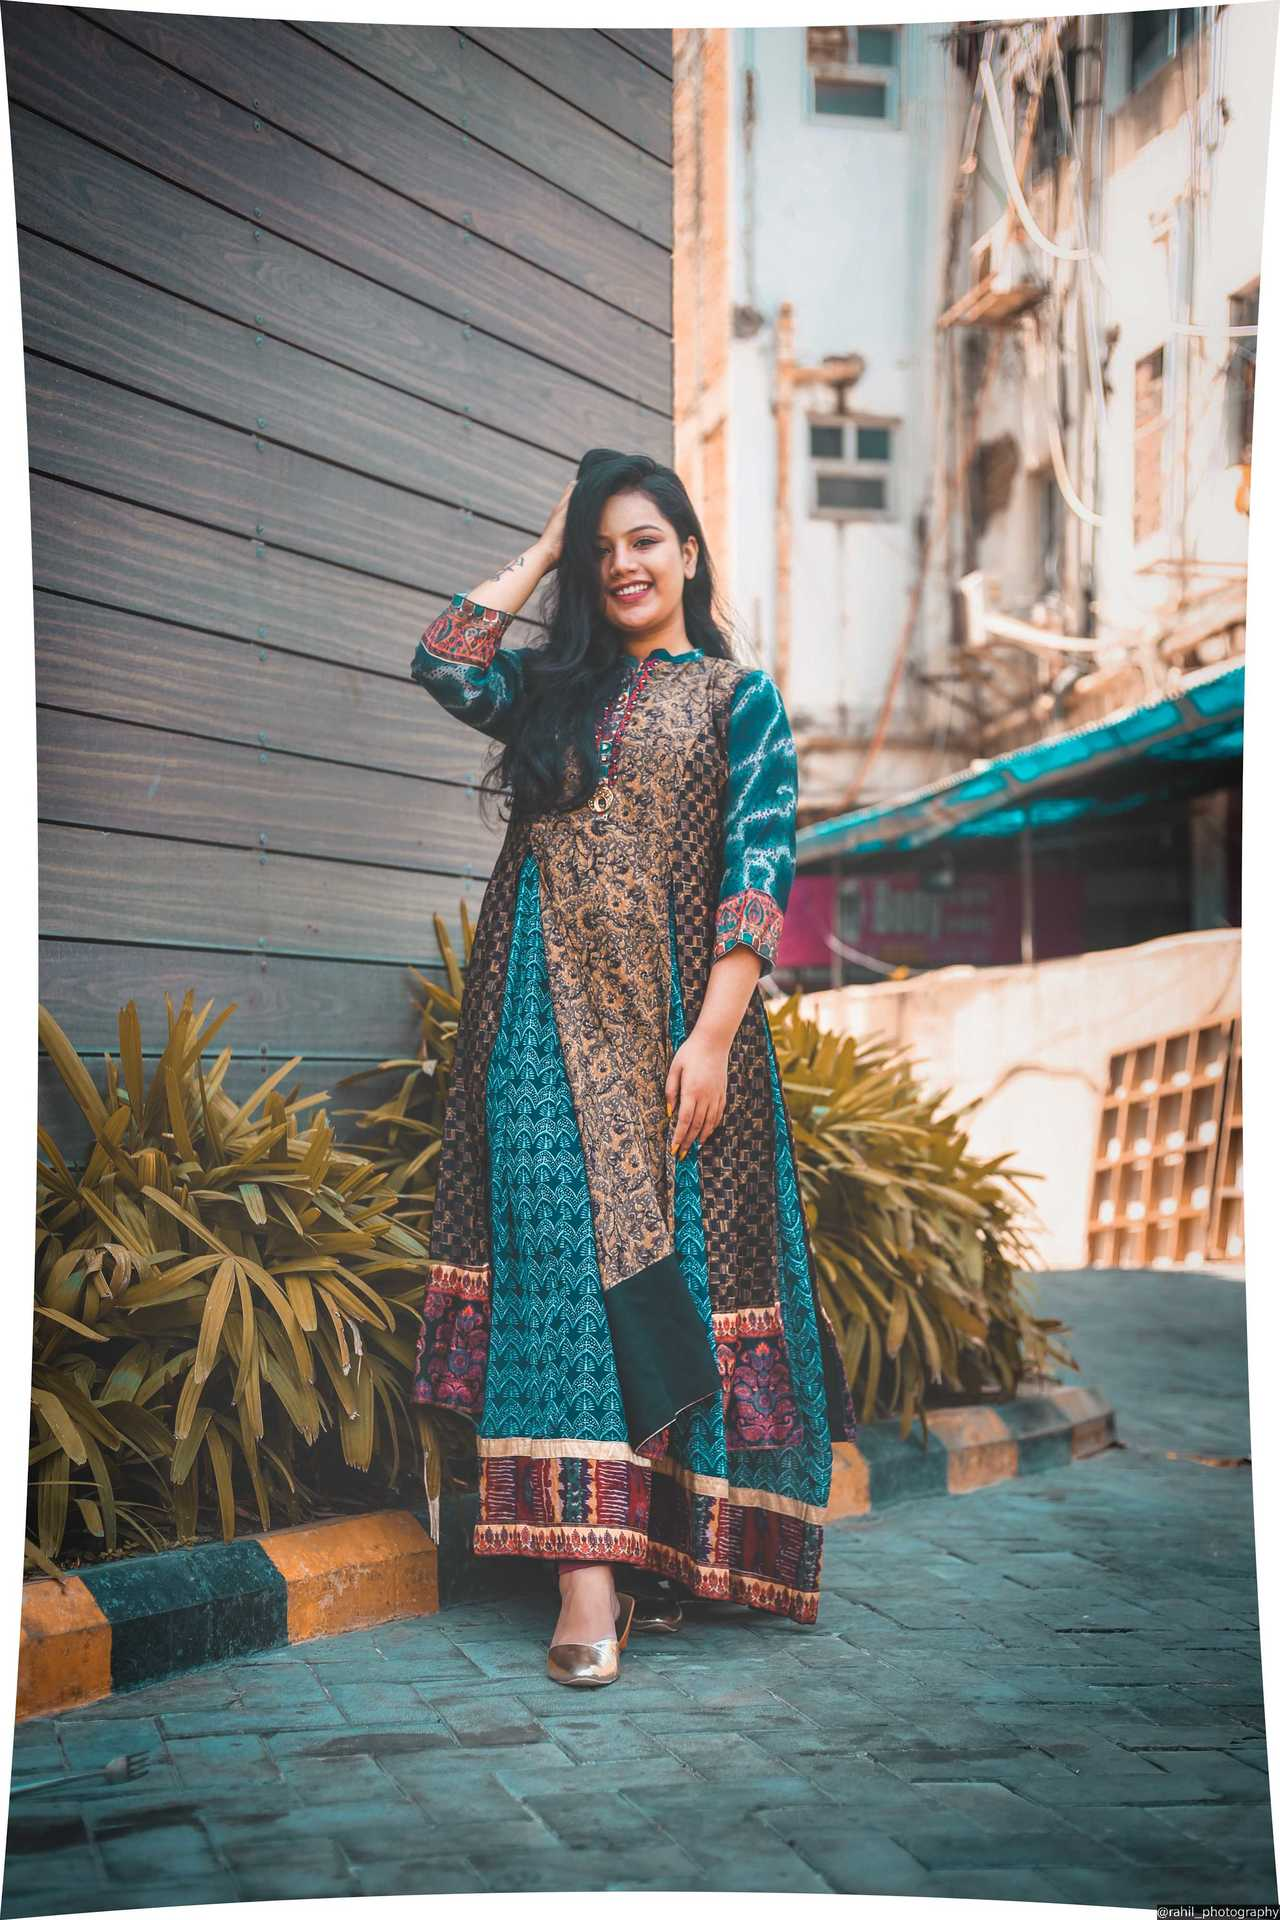 The Fashion Curve by Madhurima - PSX_20190601_142850